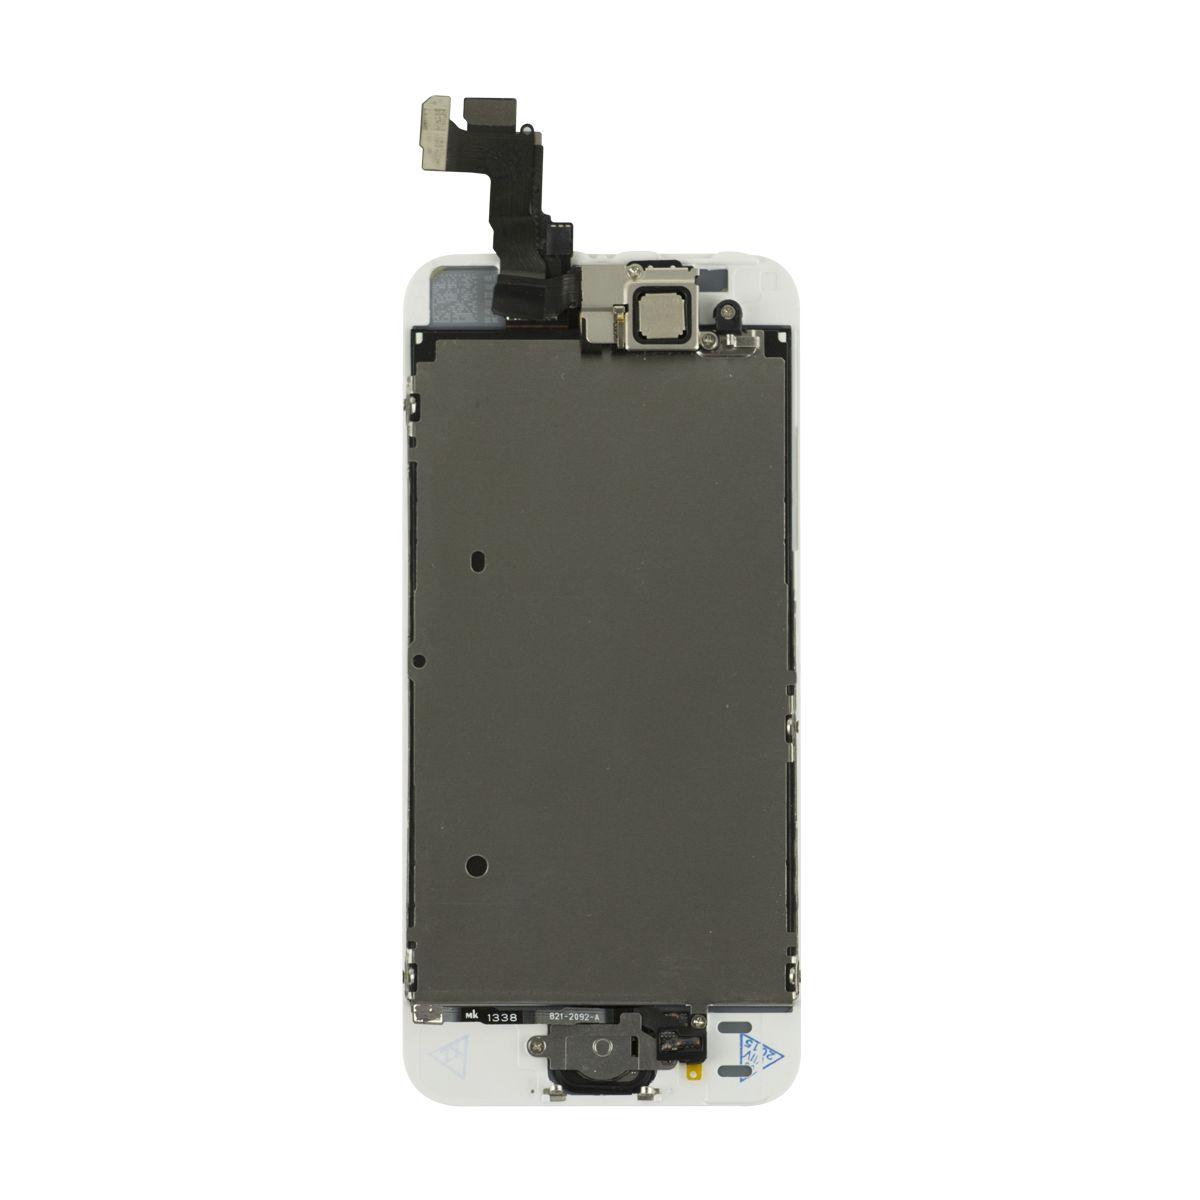 iPhone 5s LCD   Touch Screen Assembly with Small Parts - White Silver e56215f2e8